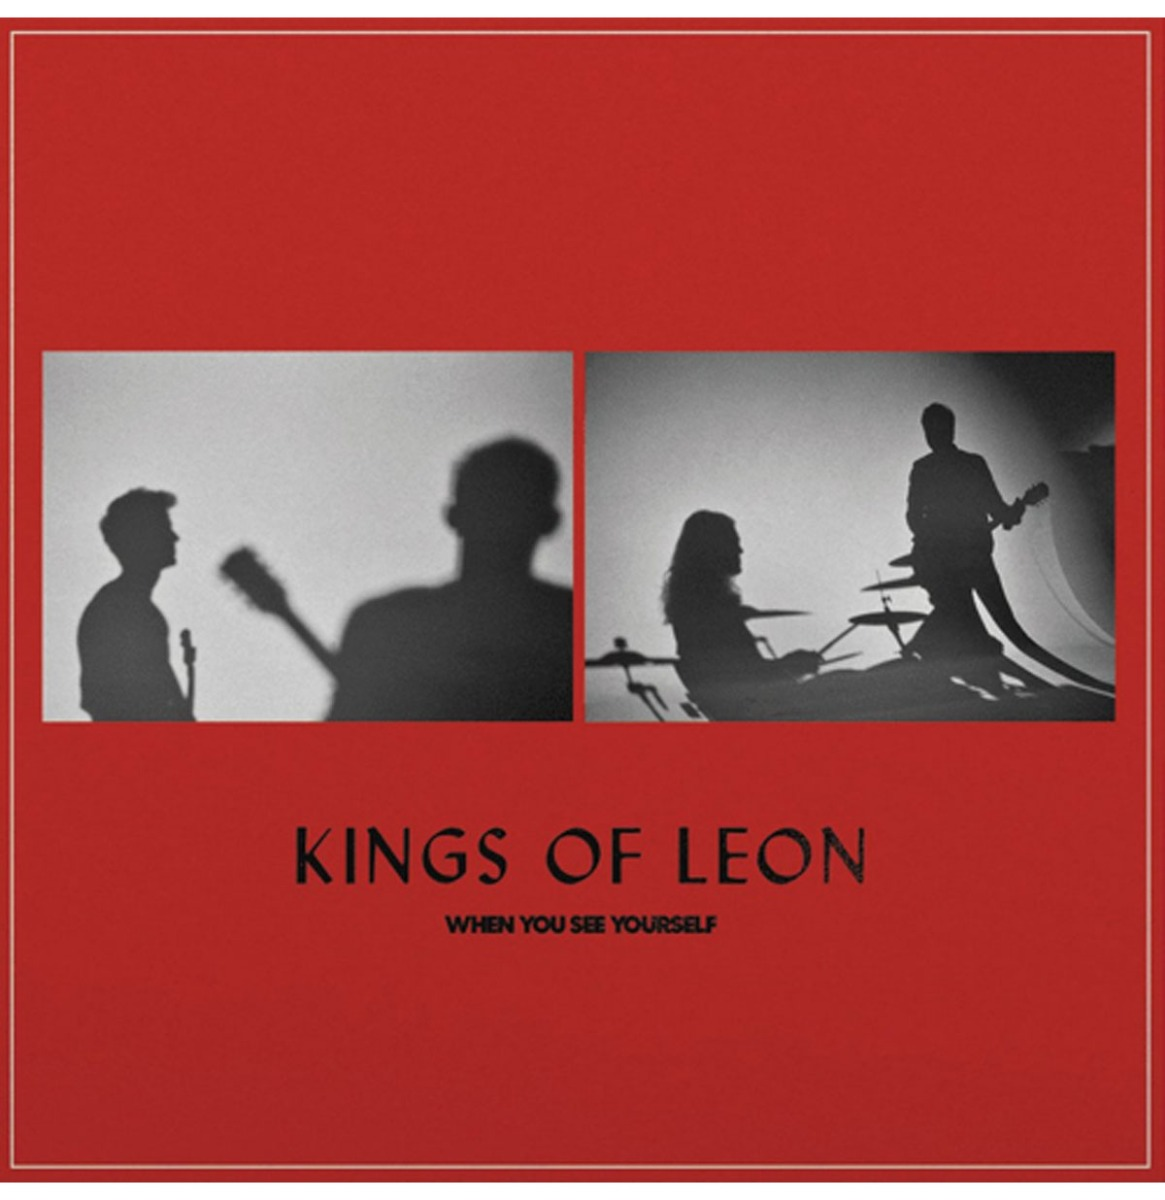 Kings Of Leon - When You See Yourself (Indie Only) 2LP